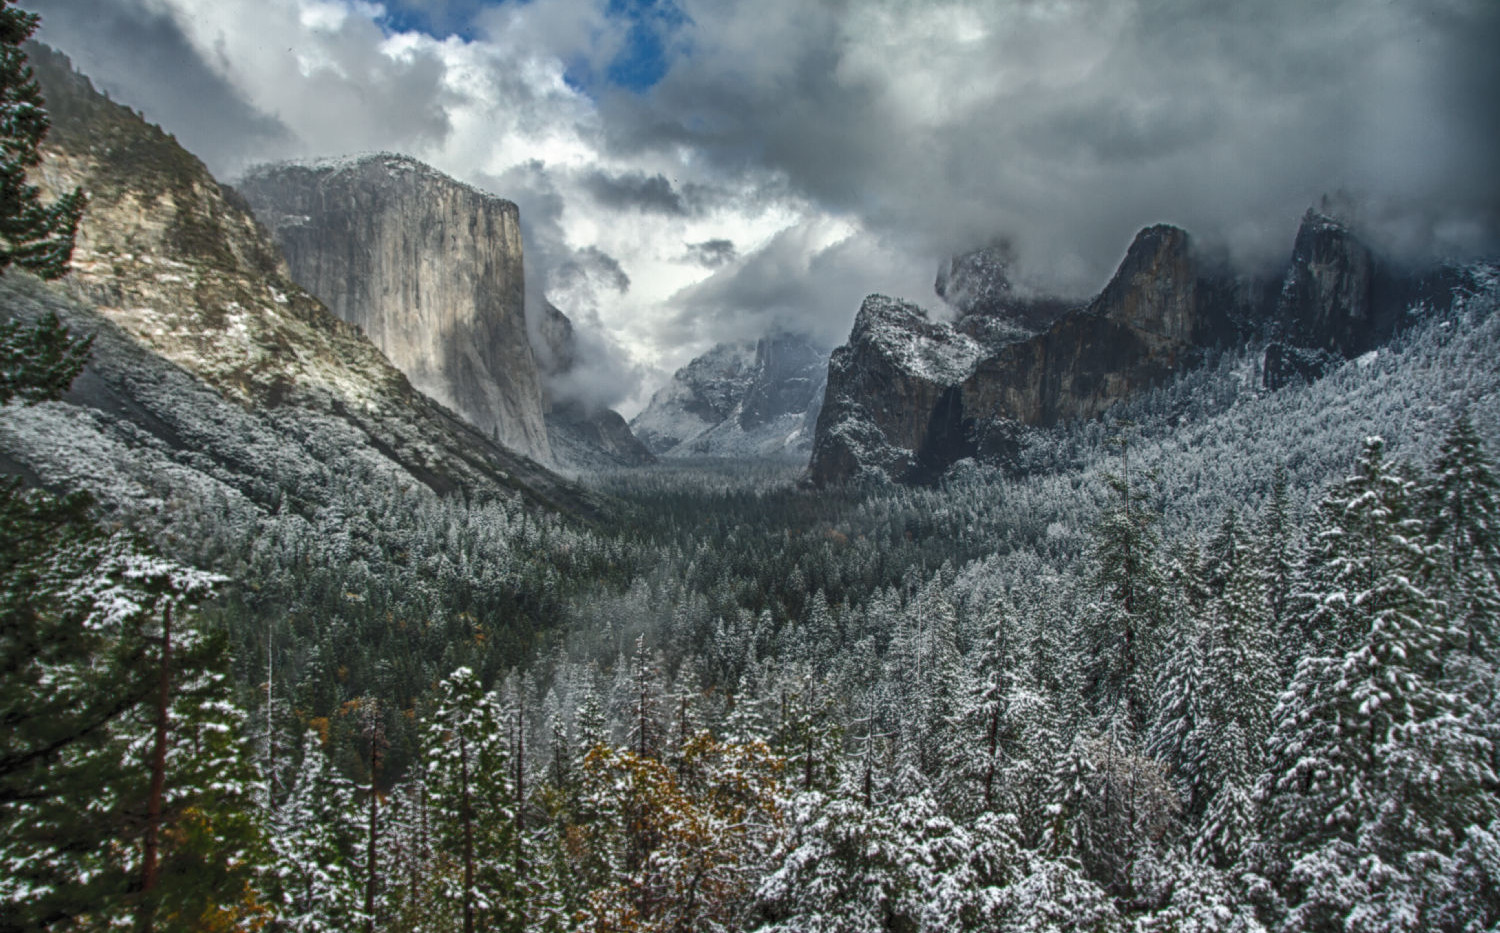 Snow Fall in Tunnel View